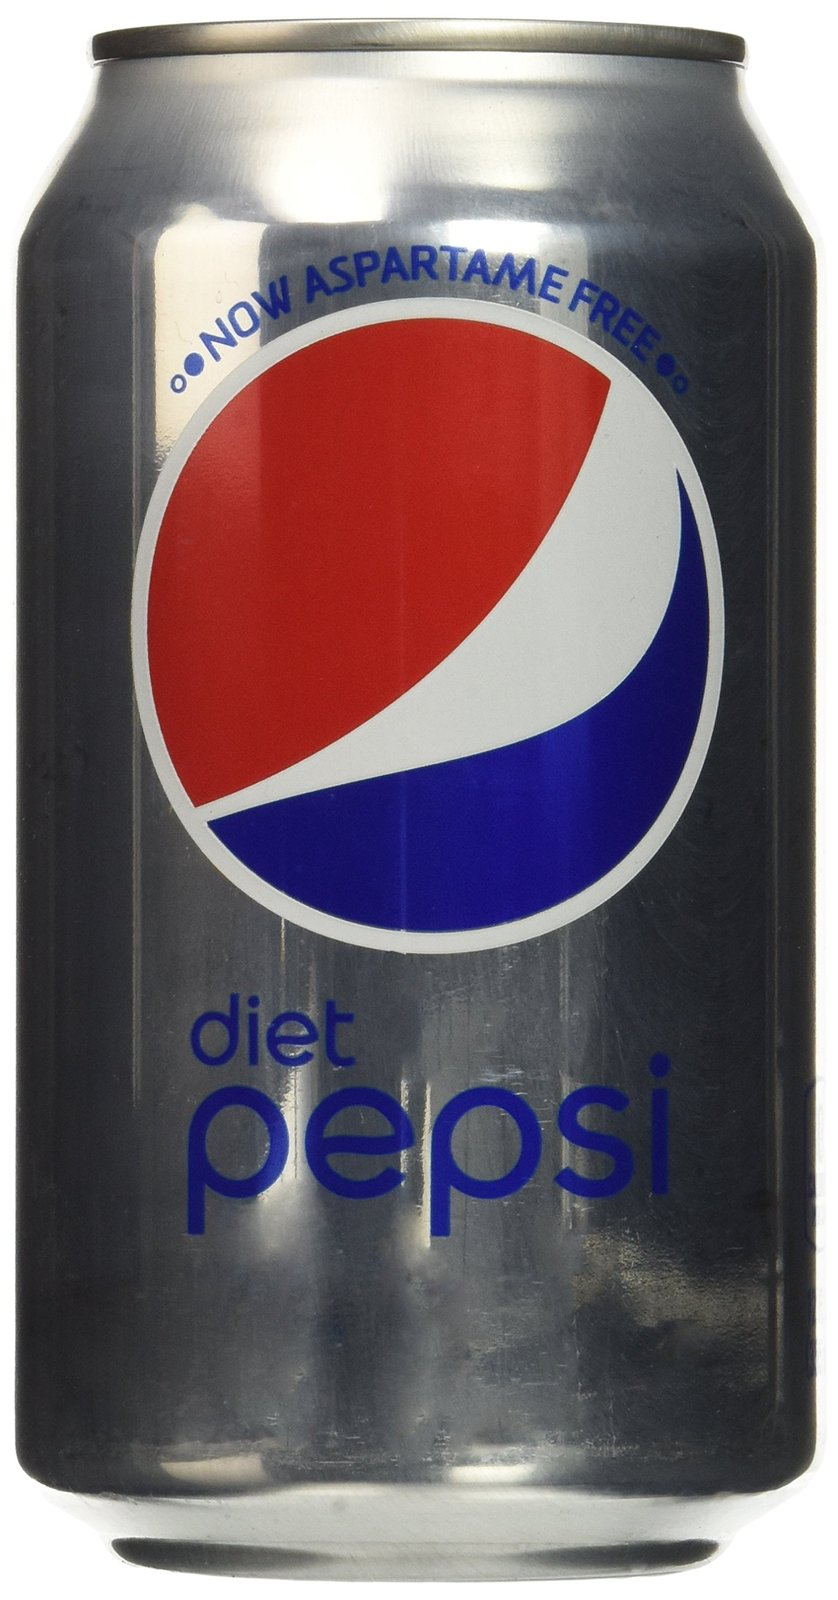 recommendation for pepsi cola Melamine construction with pepsi cola logo and bottle cap design pepsi cola bottle shaped retro bottle opener goodreads book reviews & recommendations: imdb.